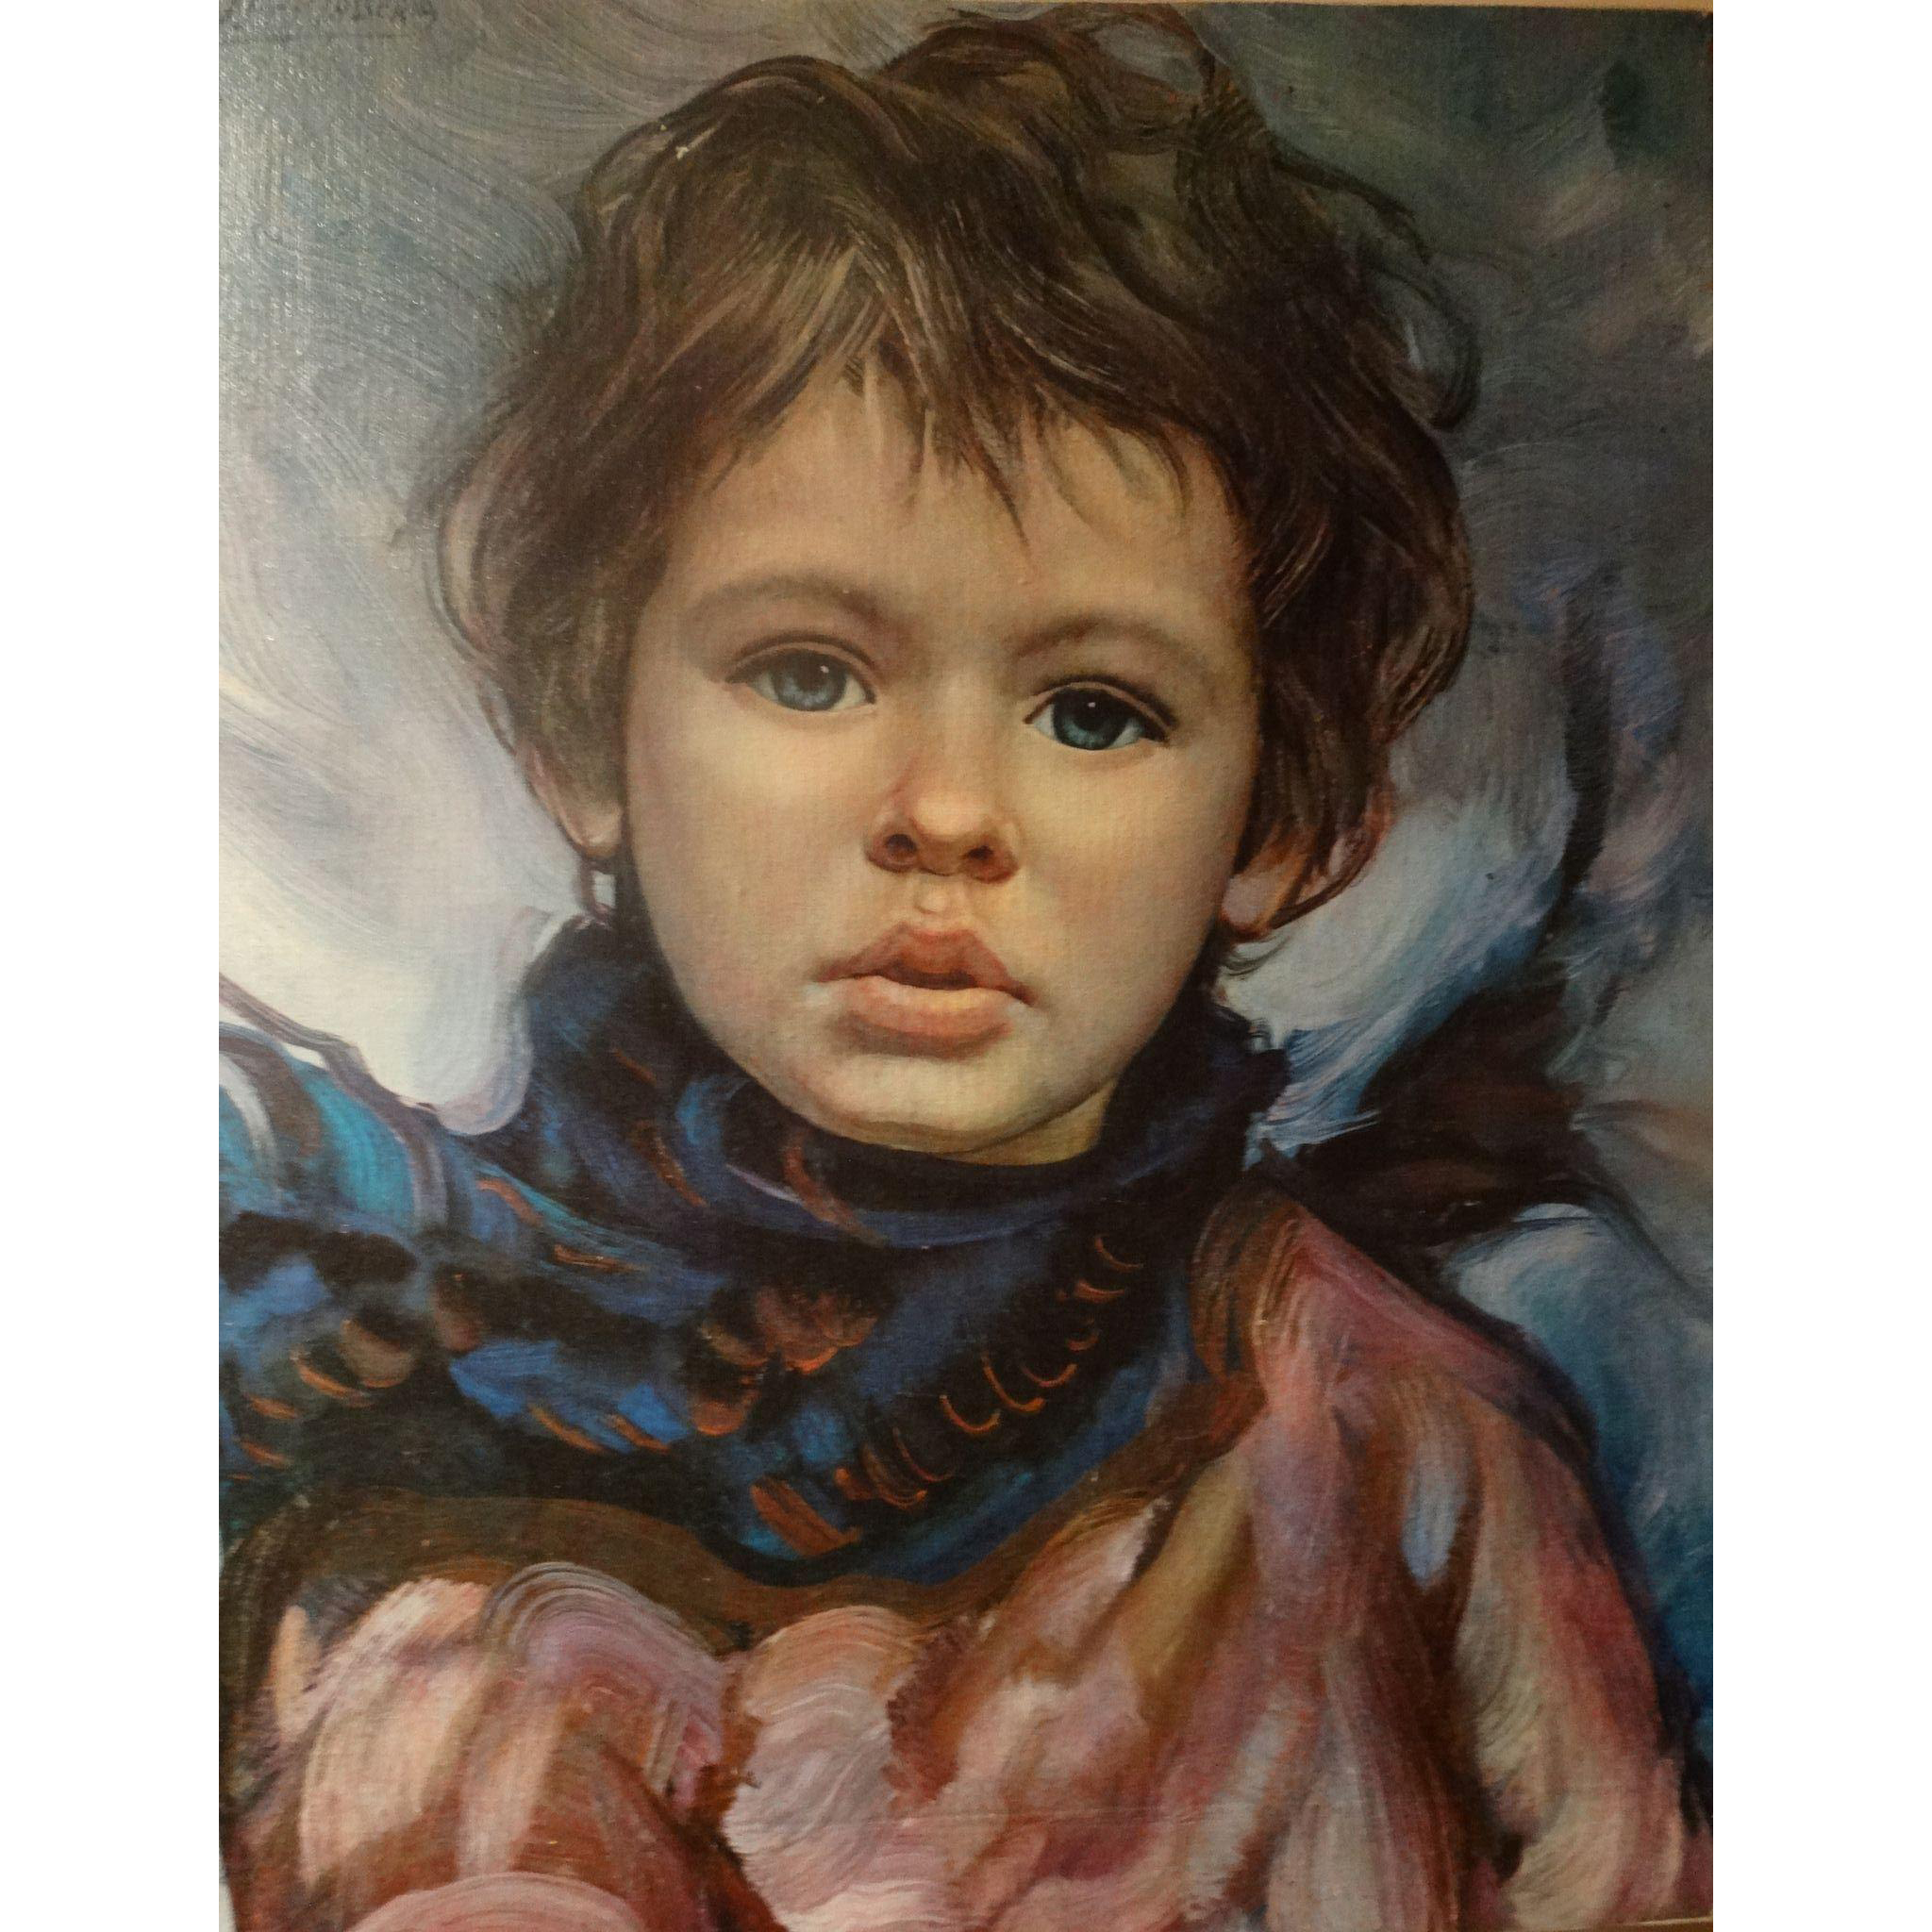 FRANCISCO J.J.C. MASSERIA (Argentinian 1926 - 2002) - Portrait Of A Child  - Original Signed Oil on Canvas